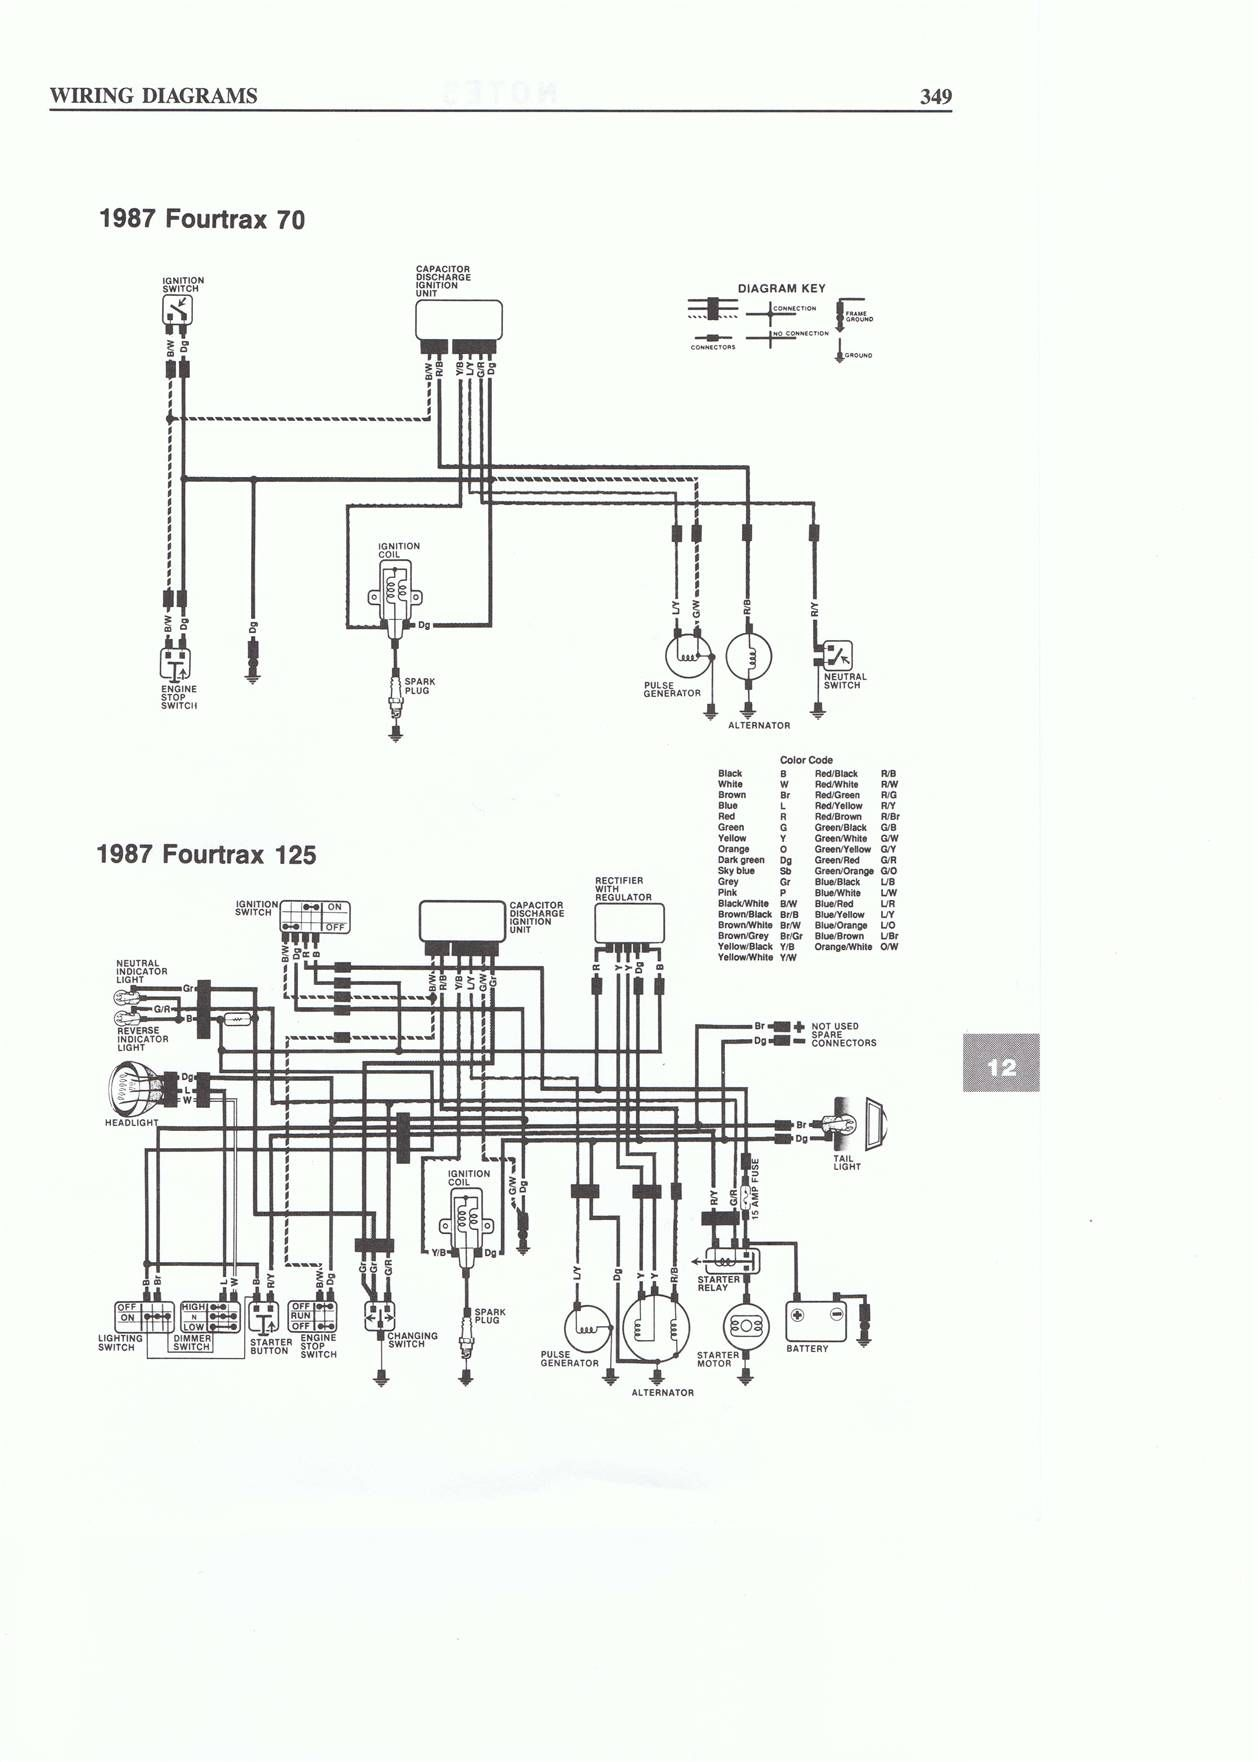 medium resolution of pin by marthie schonstein on diy and crafts diagram engineering wire gy6 150cc engine parts diagram gy6 engine diagram